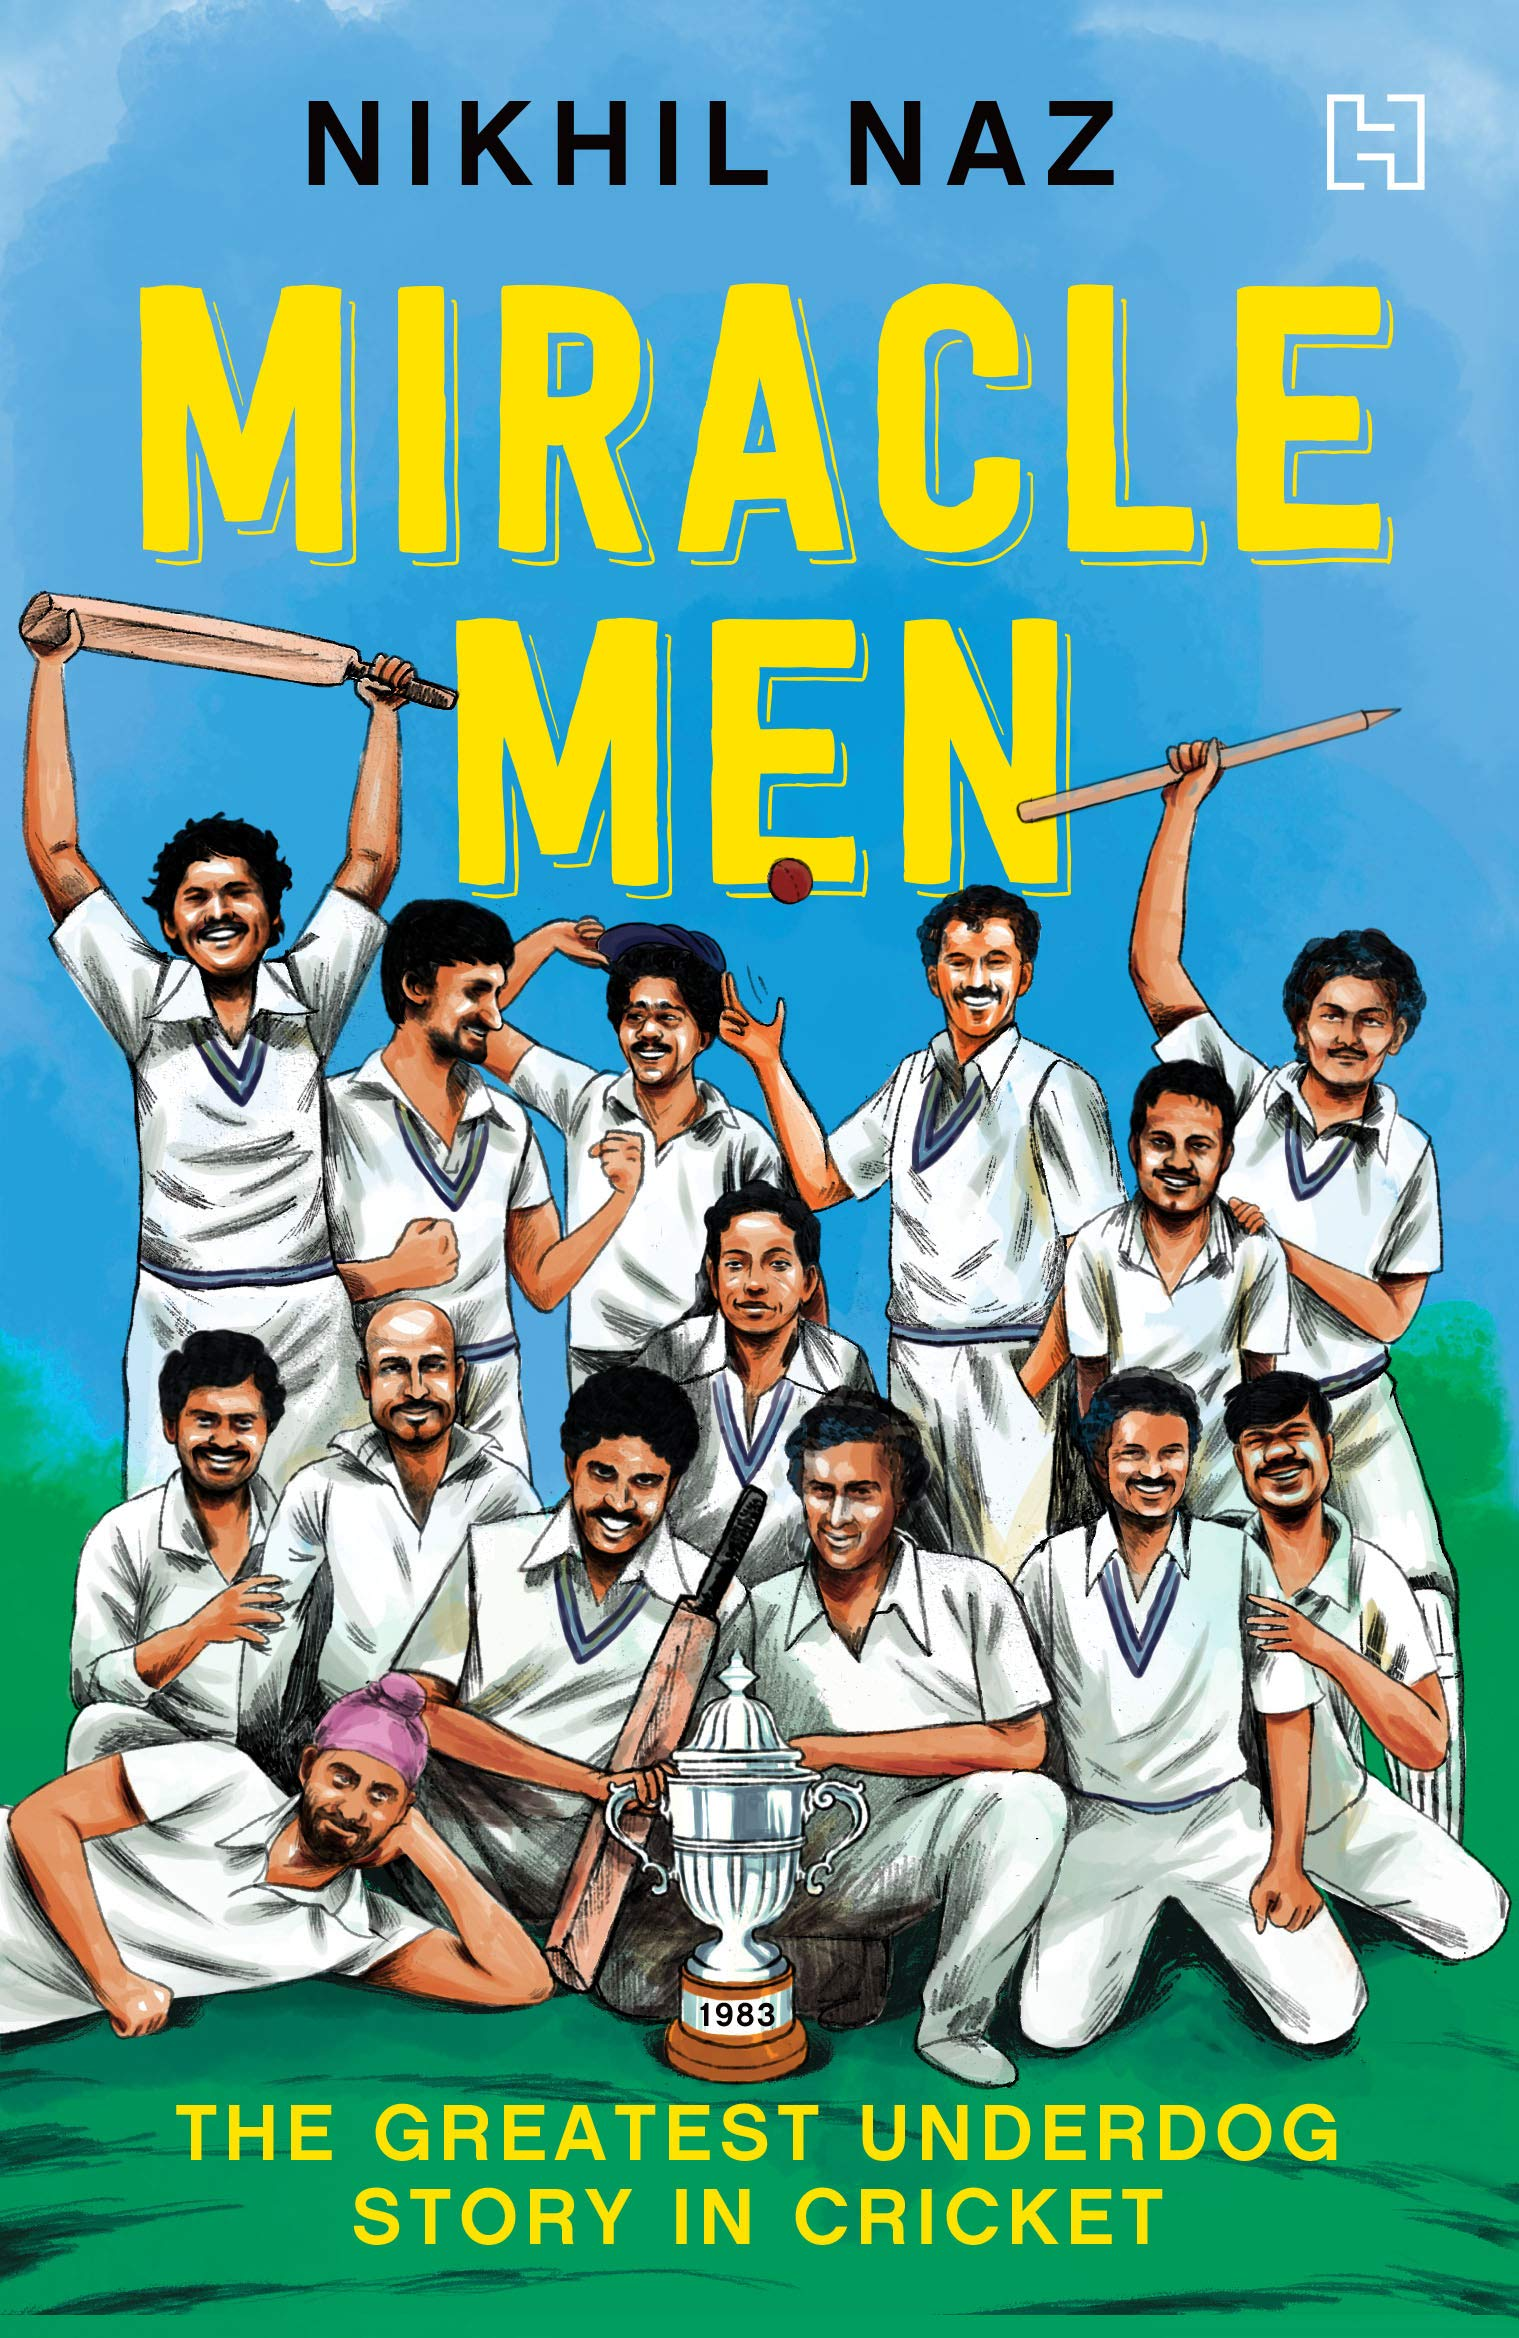 Buy Miracle Men The Greatest Underdog Story In Cricket Book Online